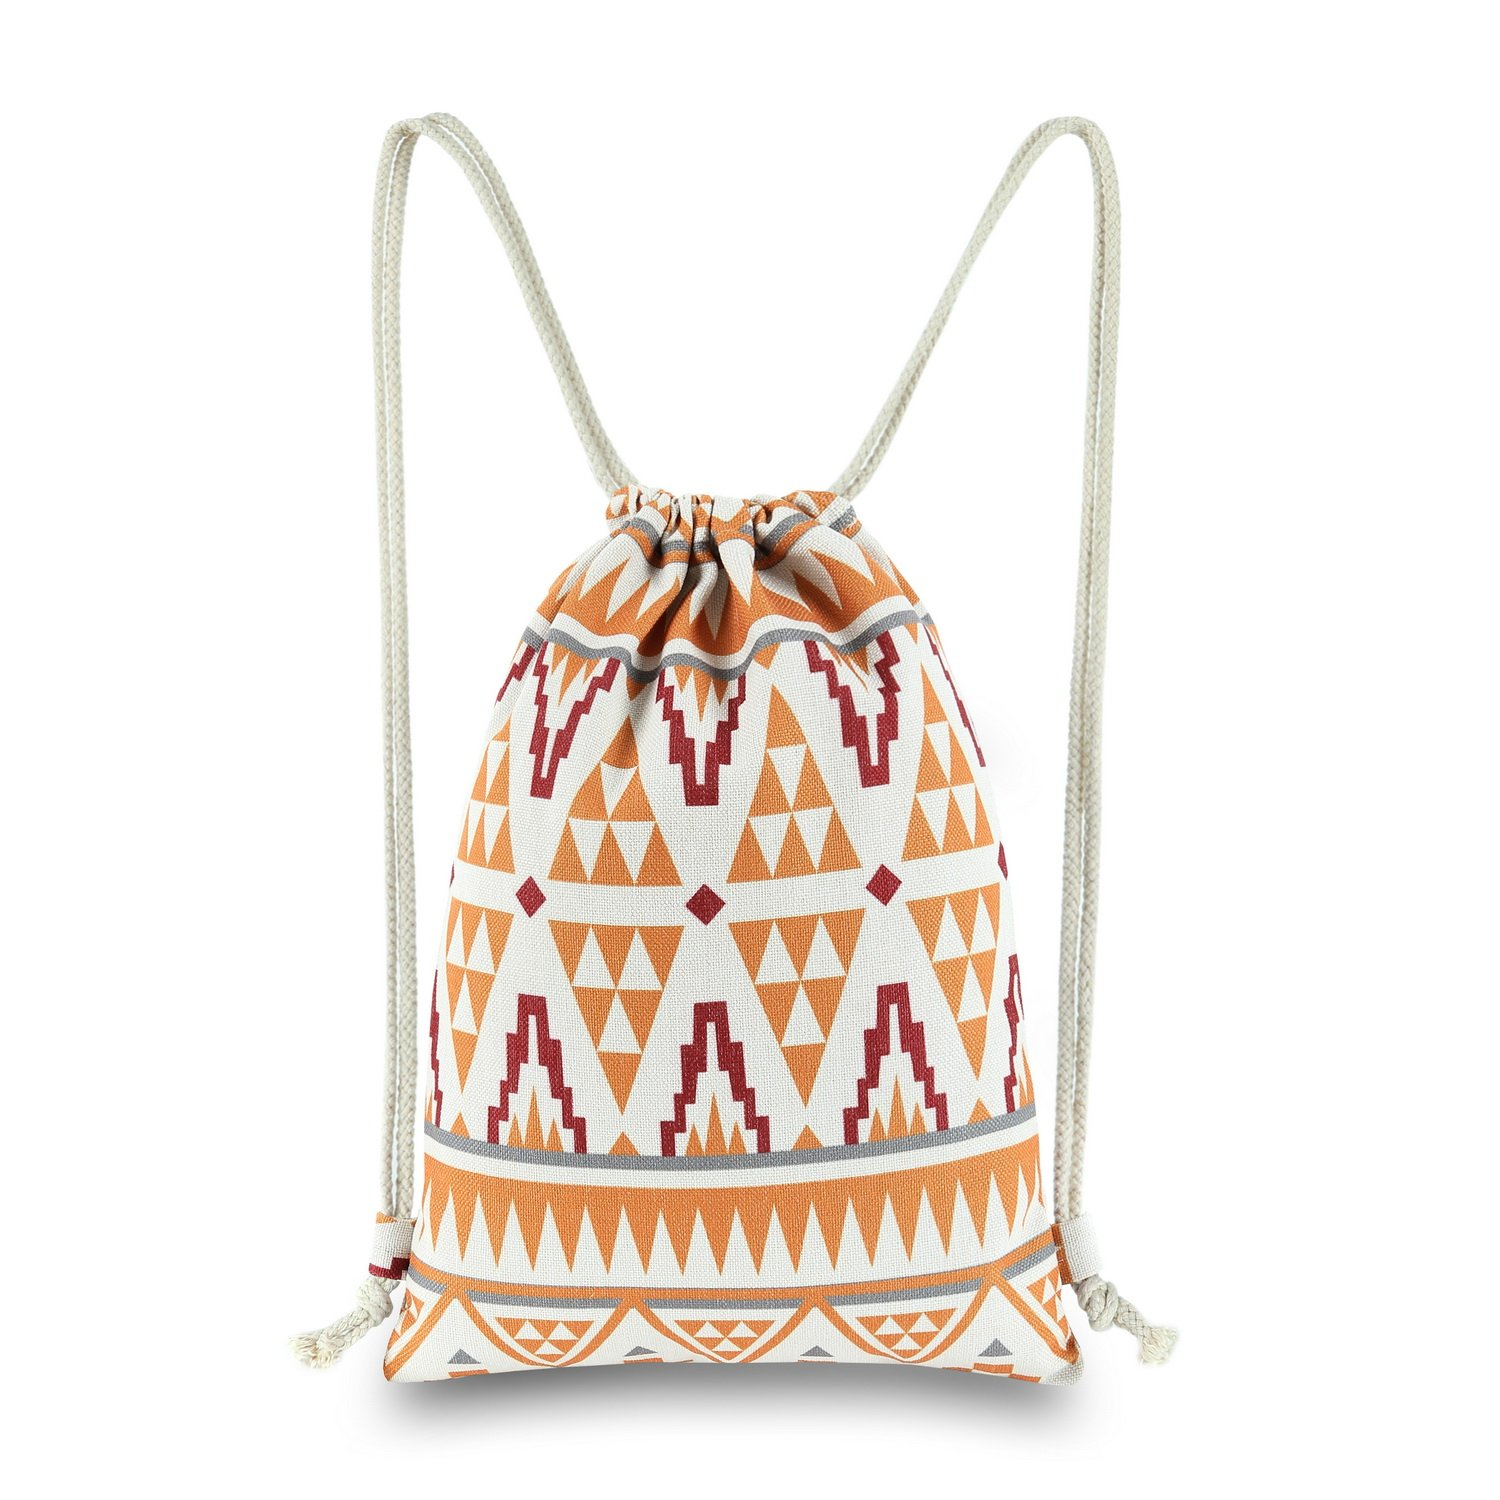 50%OFF Miomao Drawstring Bag String Backpack Canvas Gym Sackpack with  Pockets, Southwest Geometric b9b7bbfb61